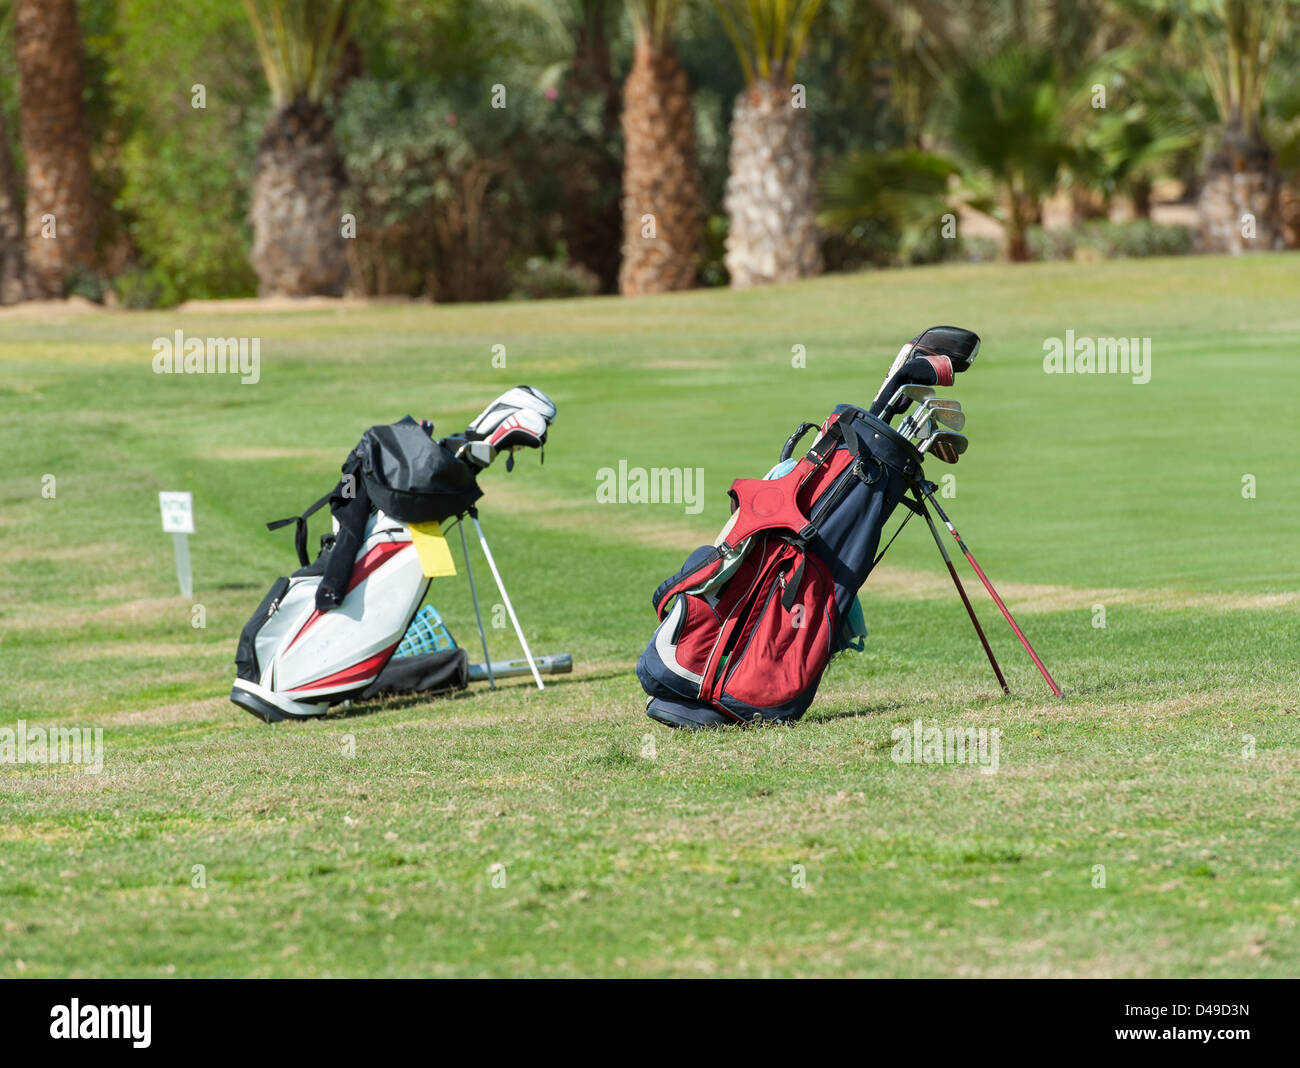 Two golf bags with clubs standing on a course fairway - Stock Image